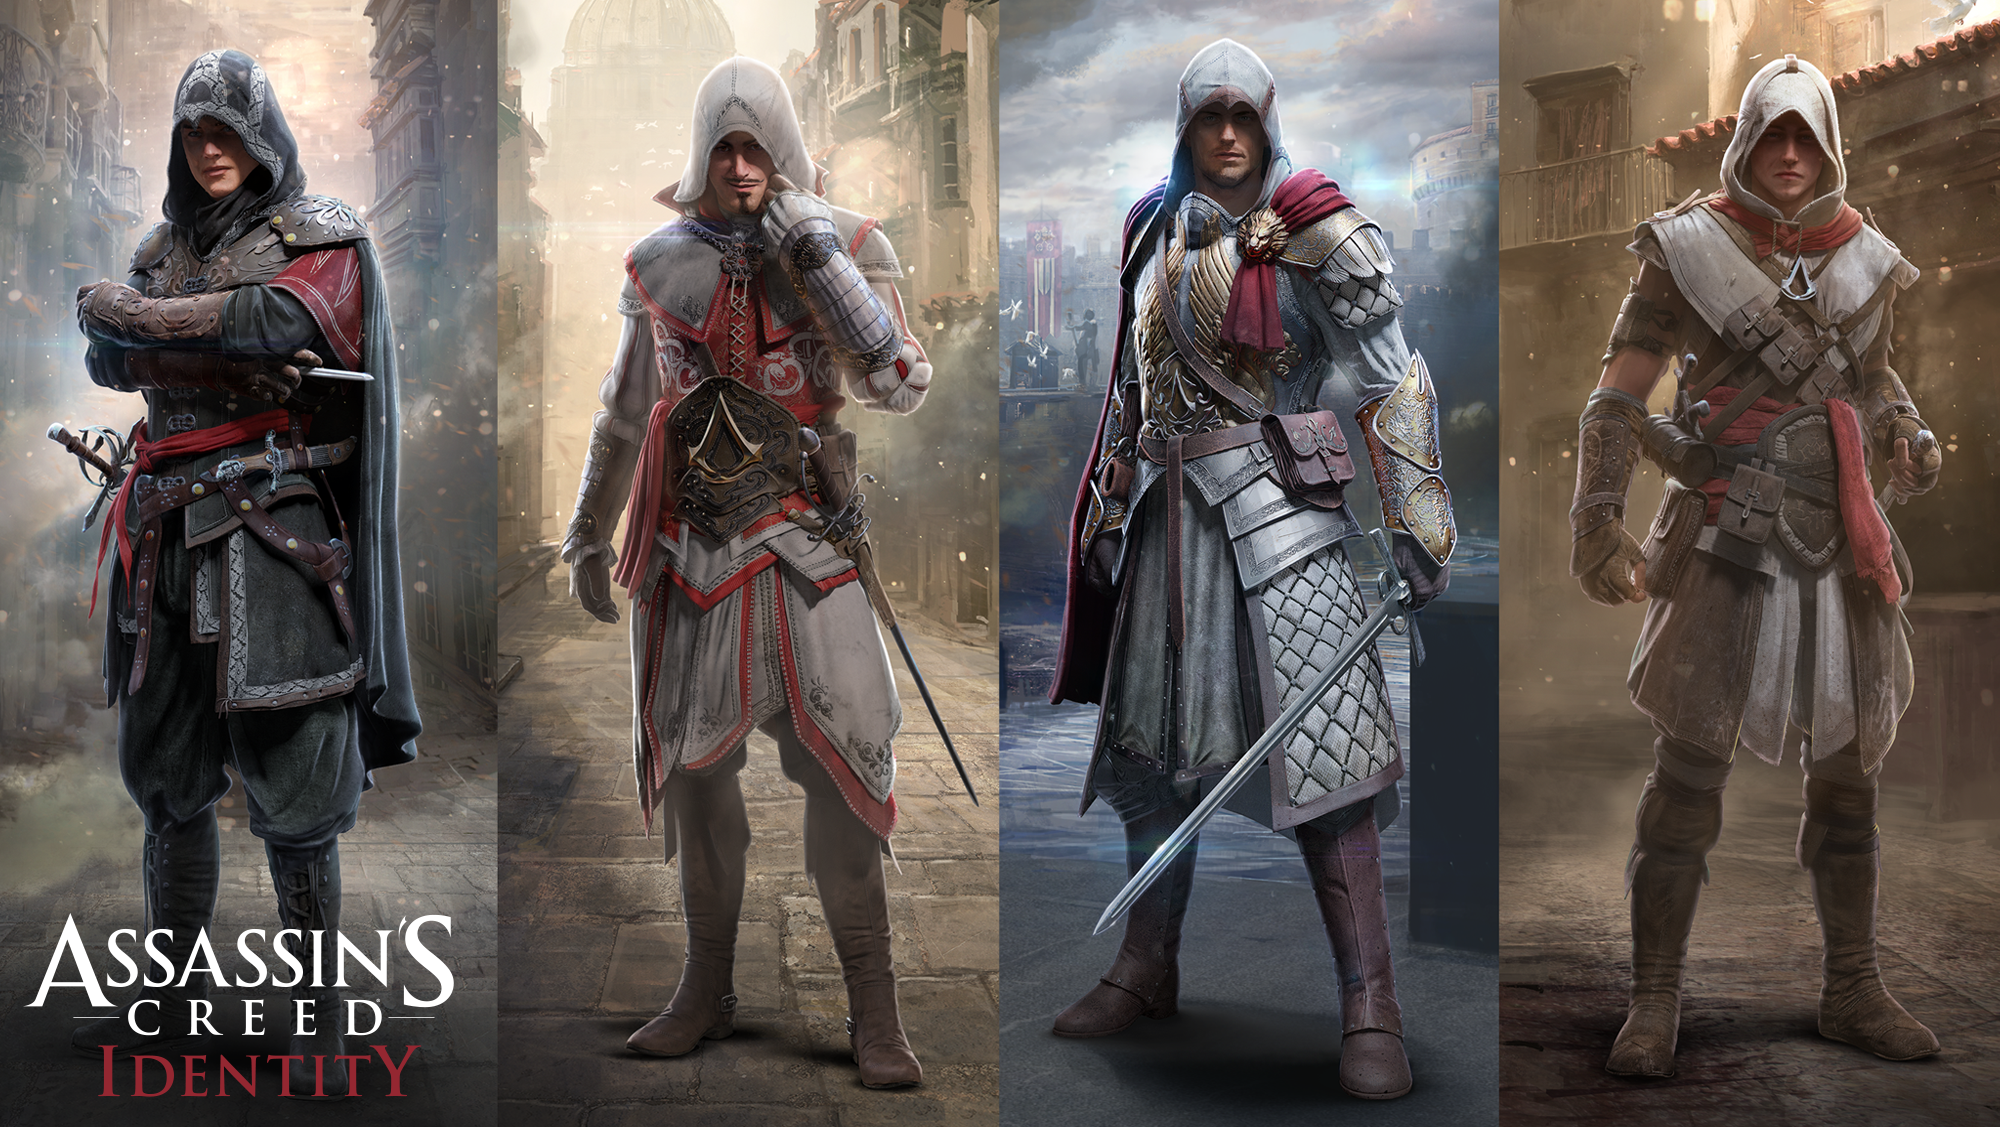 assassins creed identity (4)